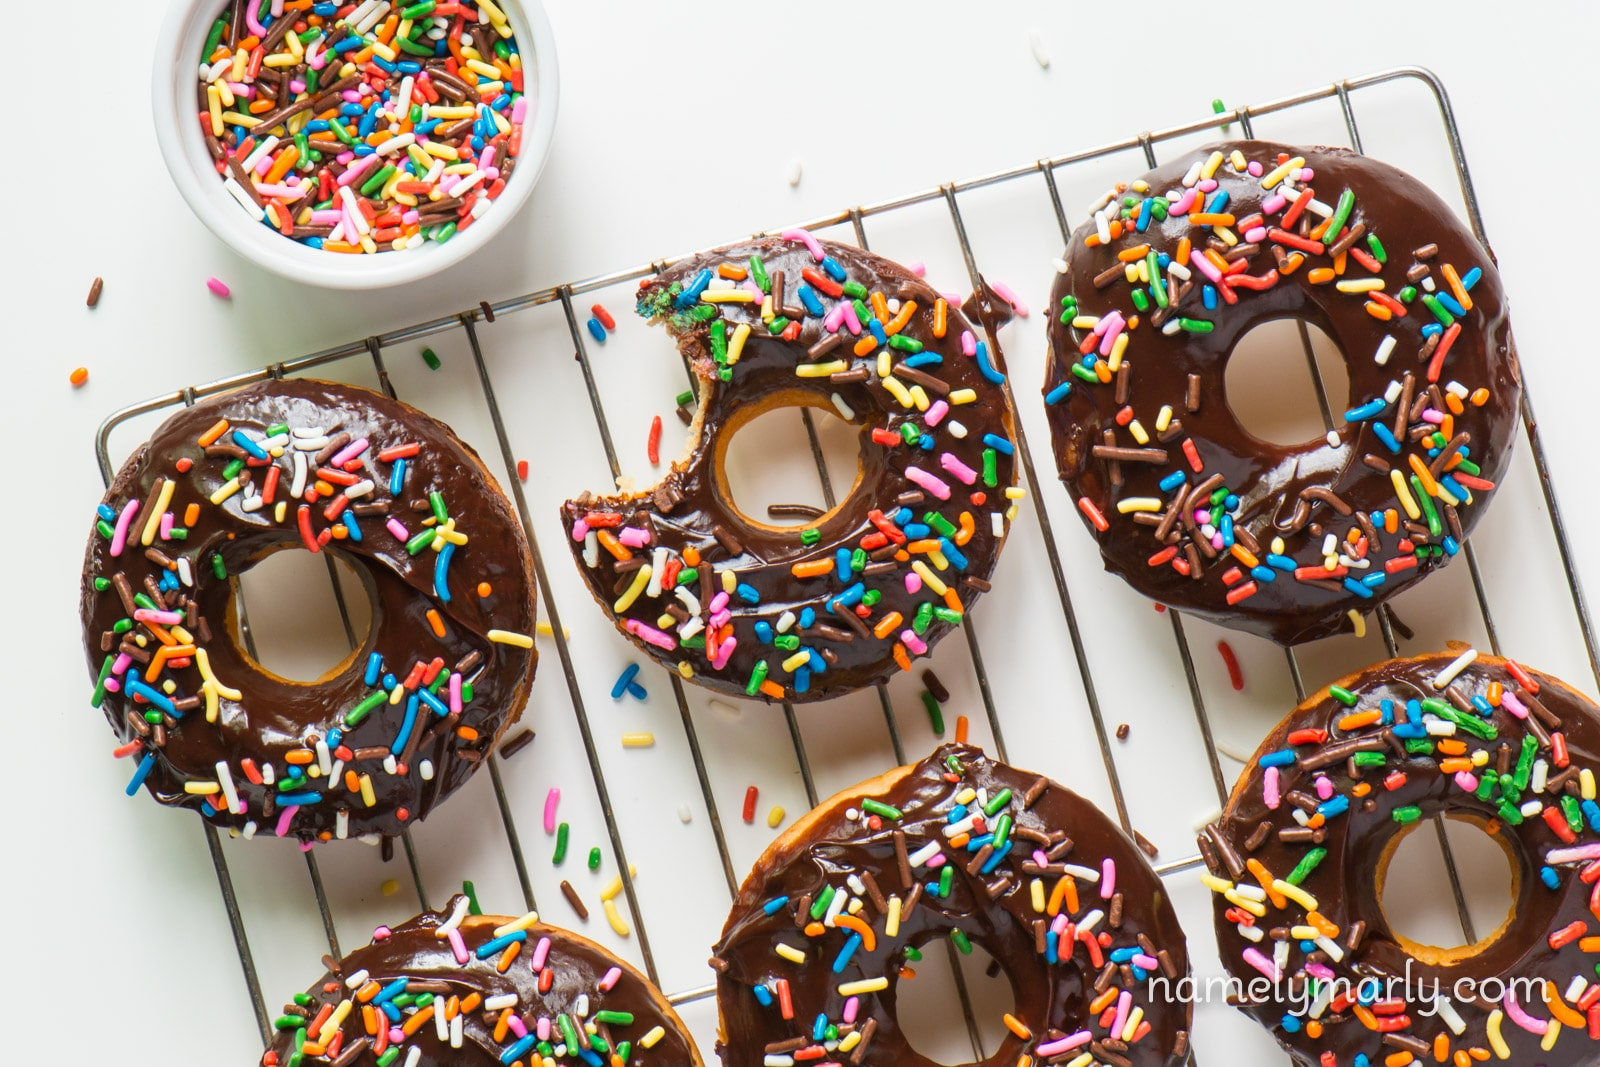 Vegan Chocolate Glazed Donuts with Sprinkles - Namely Marly